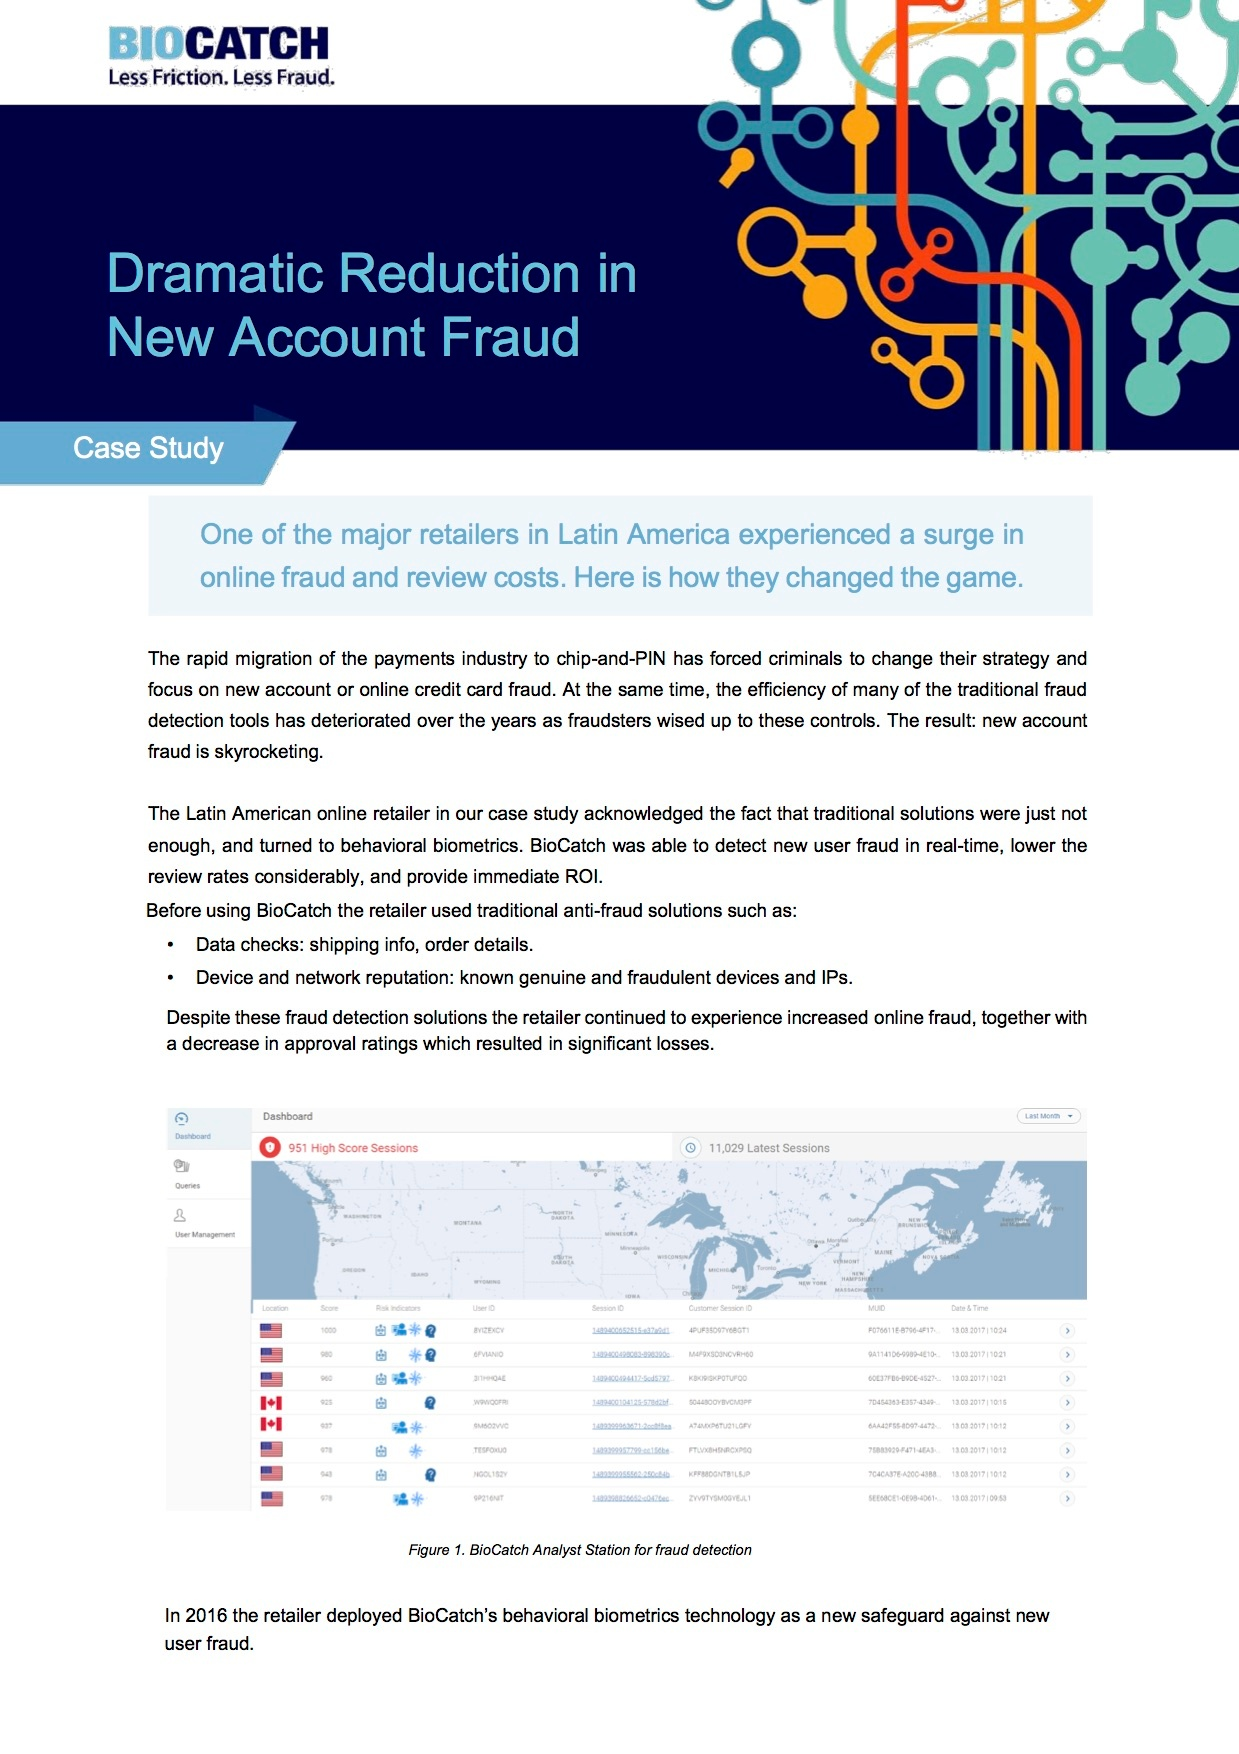 Dramatic Reduction in New Account Frauds - Case Study v2 (1) 22.3.17 FINAL.jpg